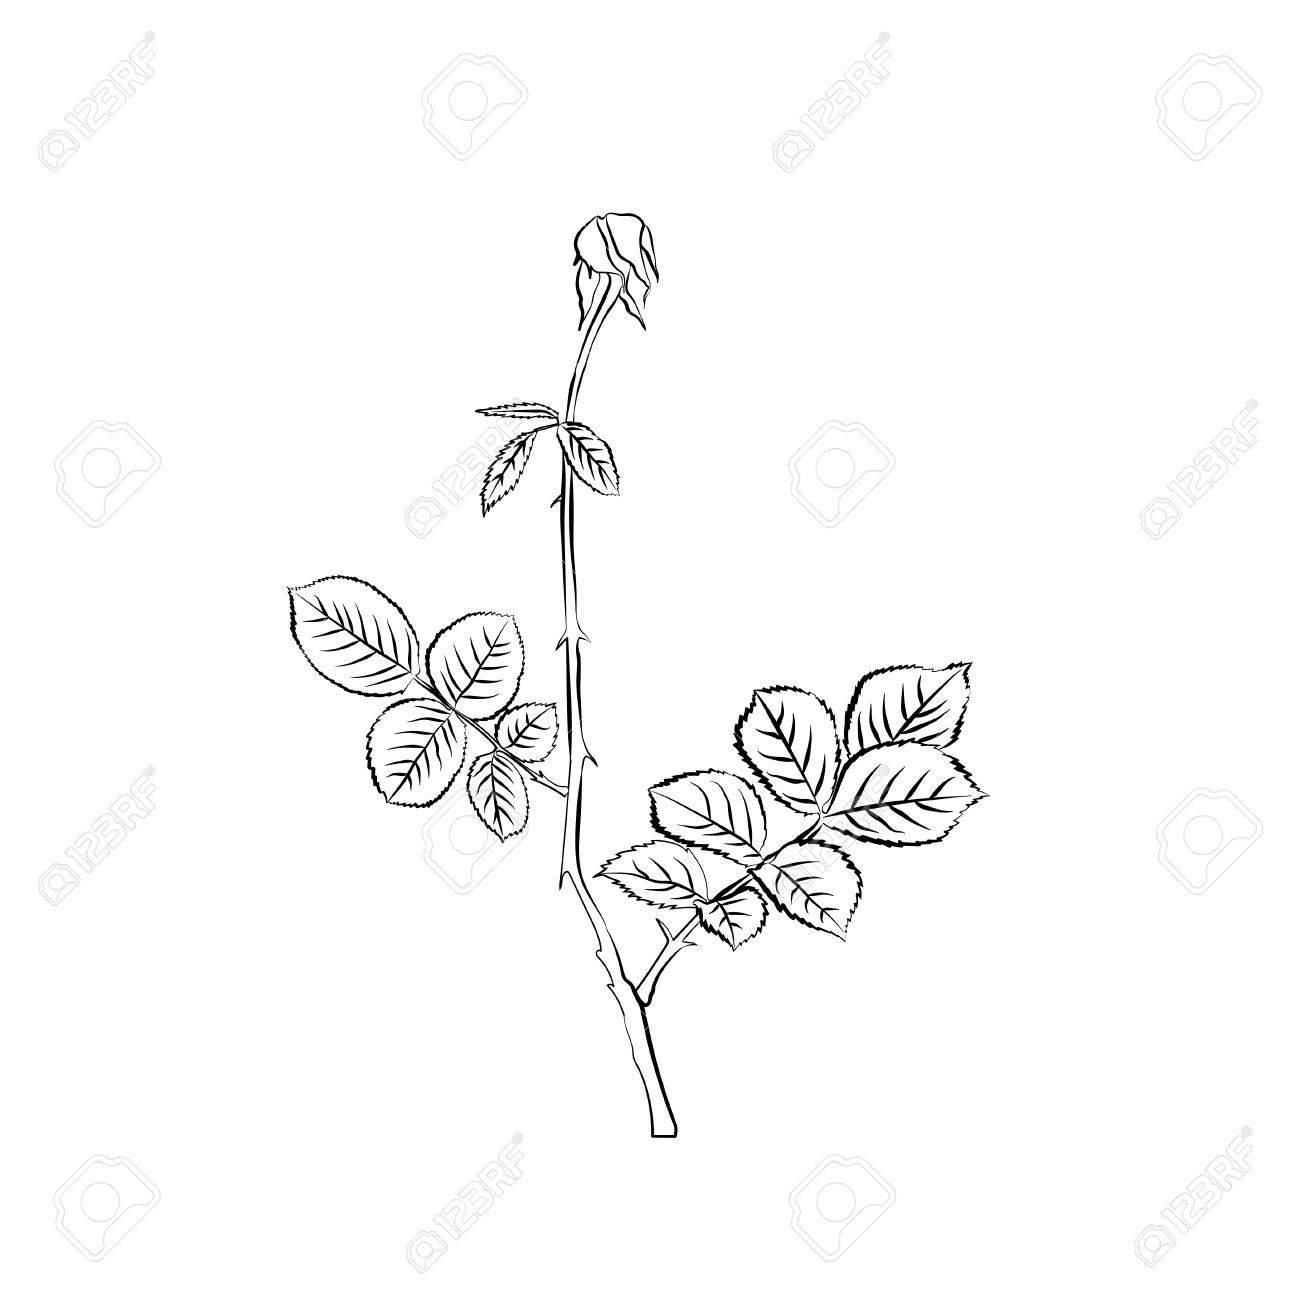 1300x1300 Stem And Leaves Of Withering Rose. Sketch. Black Outline On White